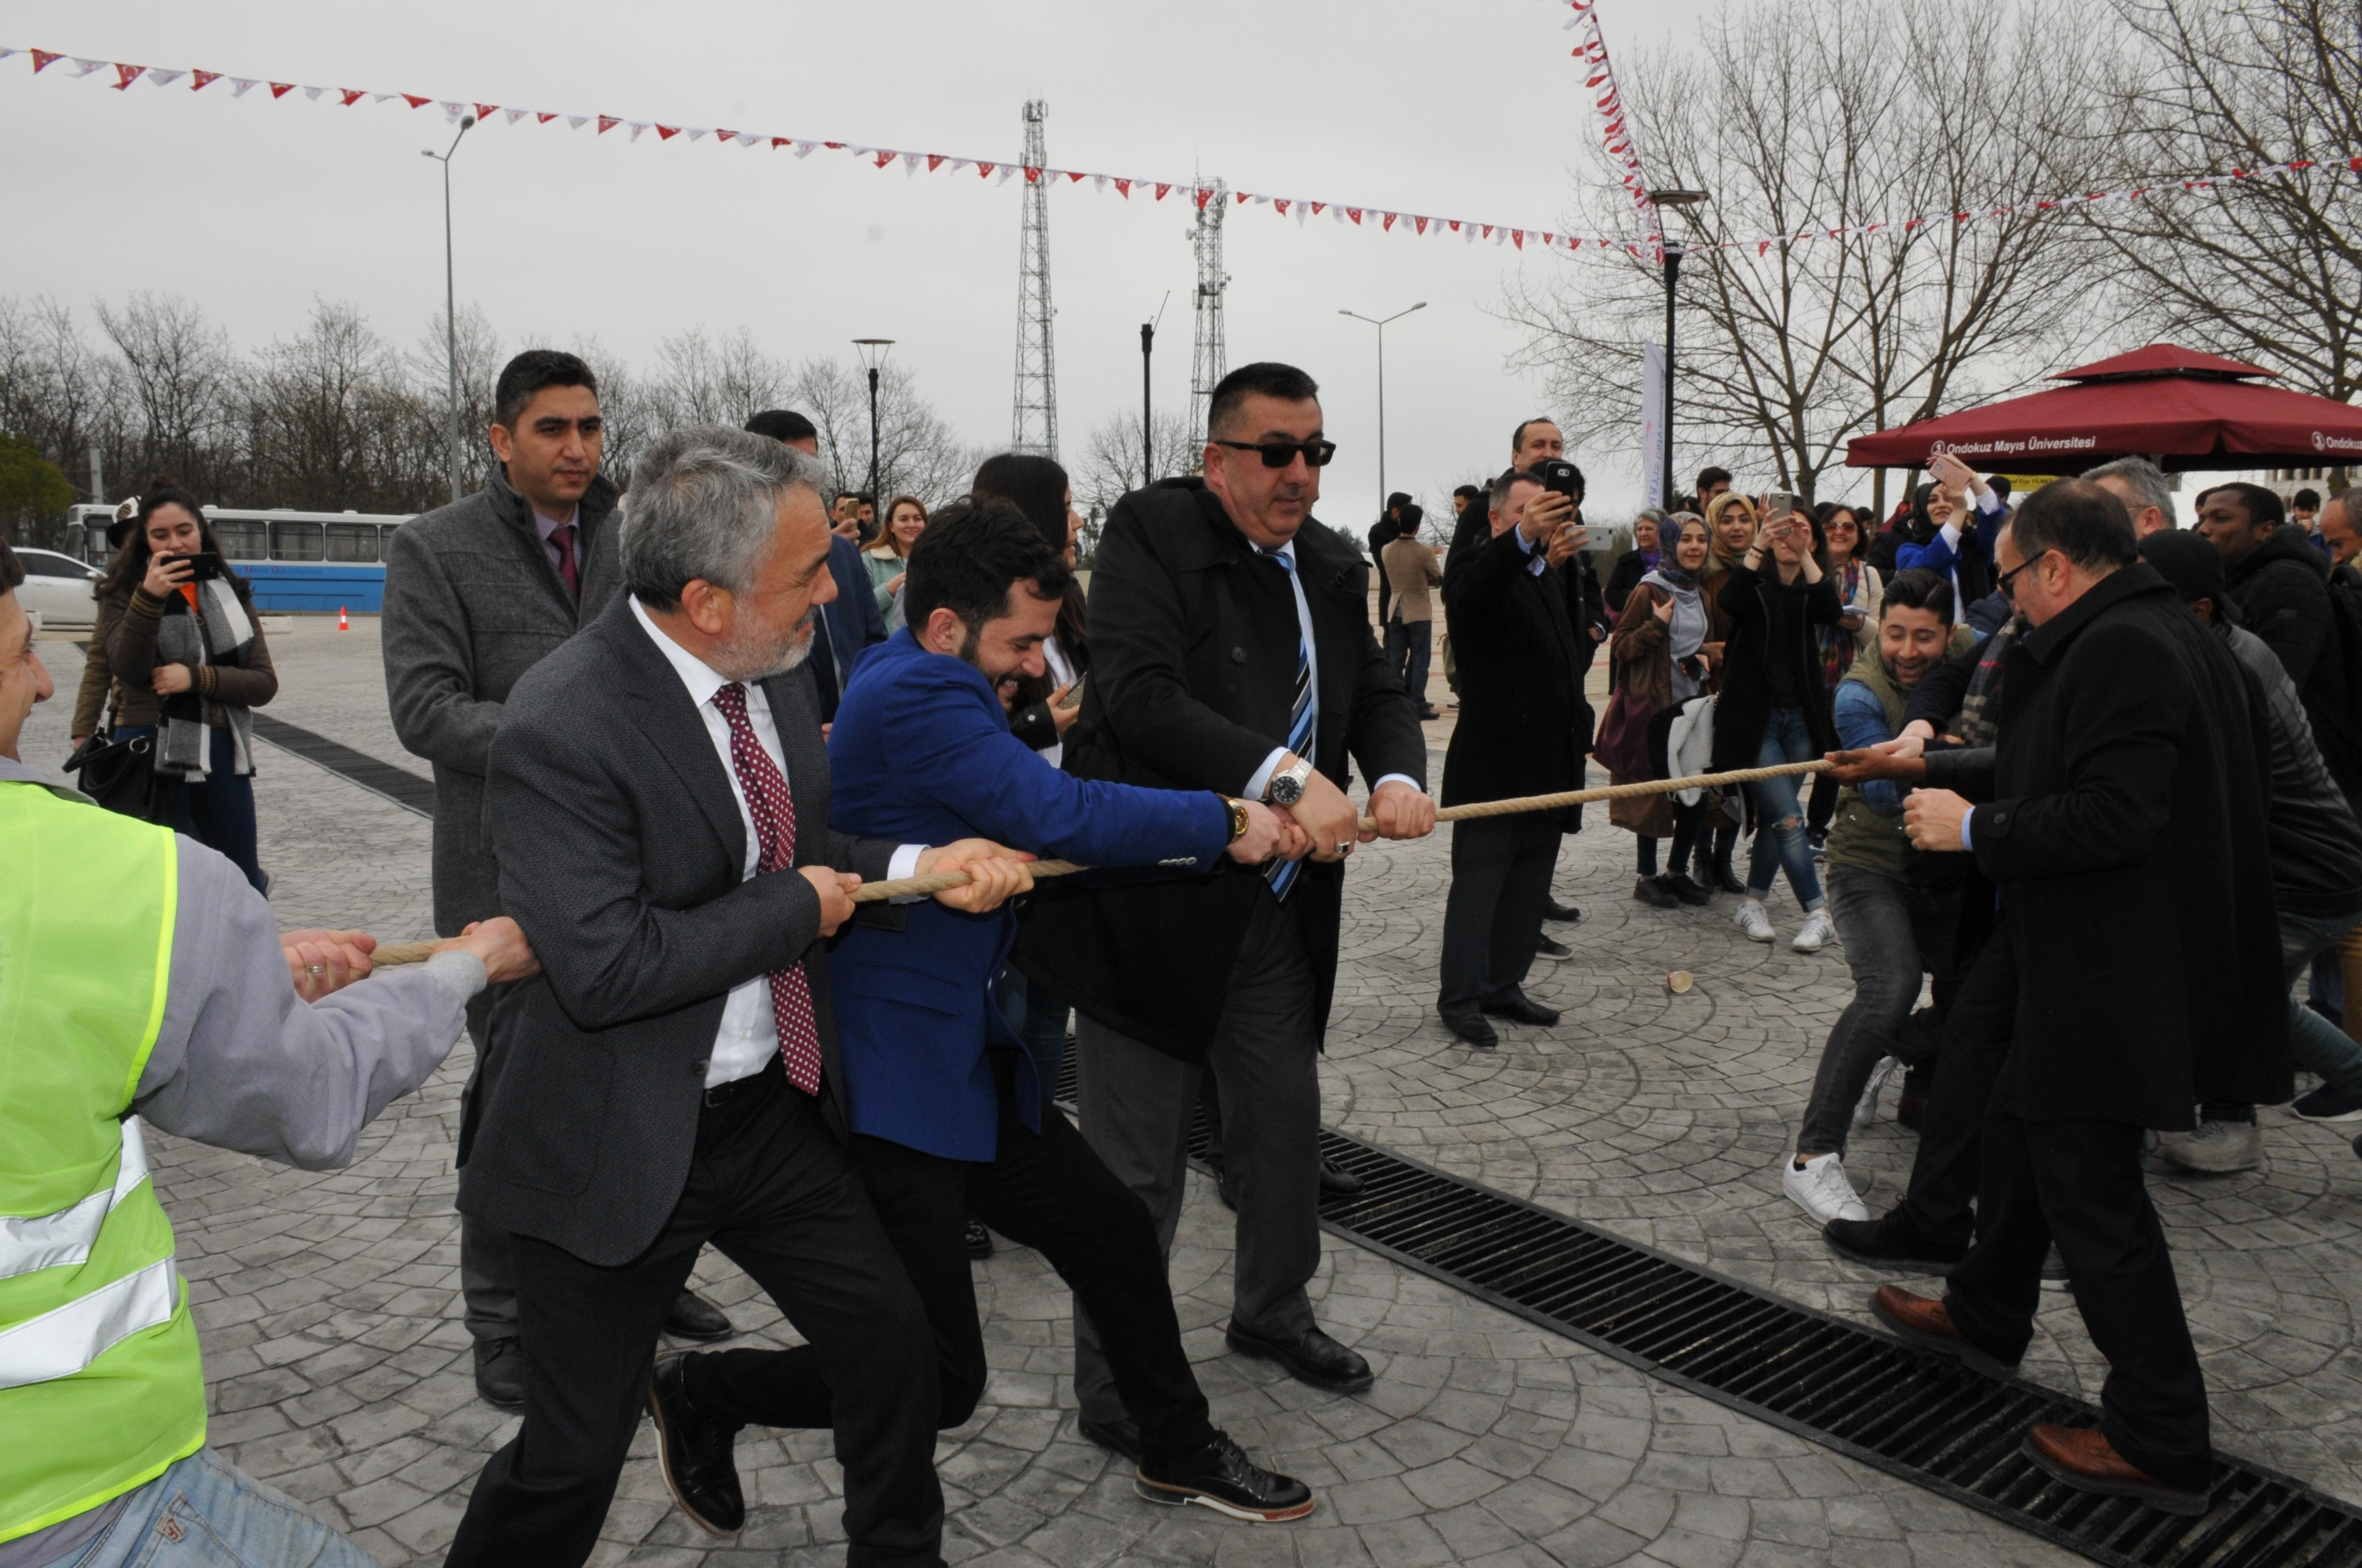 http://www.omu.edu.tr/sites/default/files/files/omu_family_enthusiastically_celebrated_newroz/dsc_0318.jpg